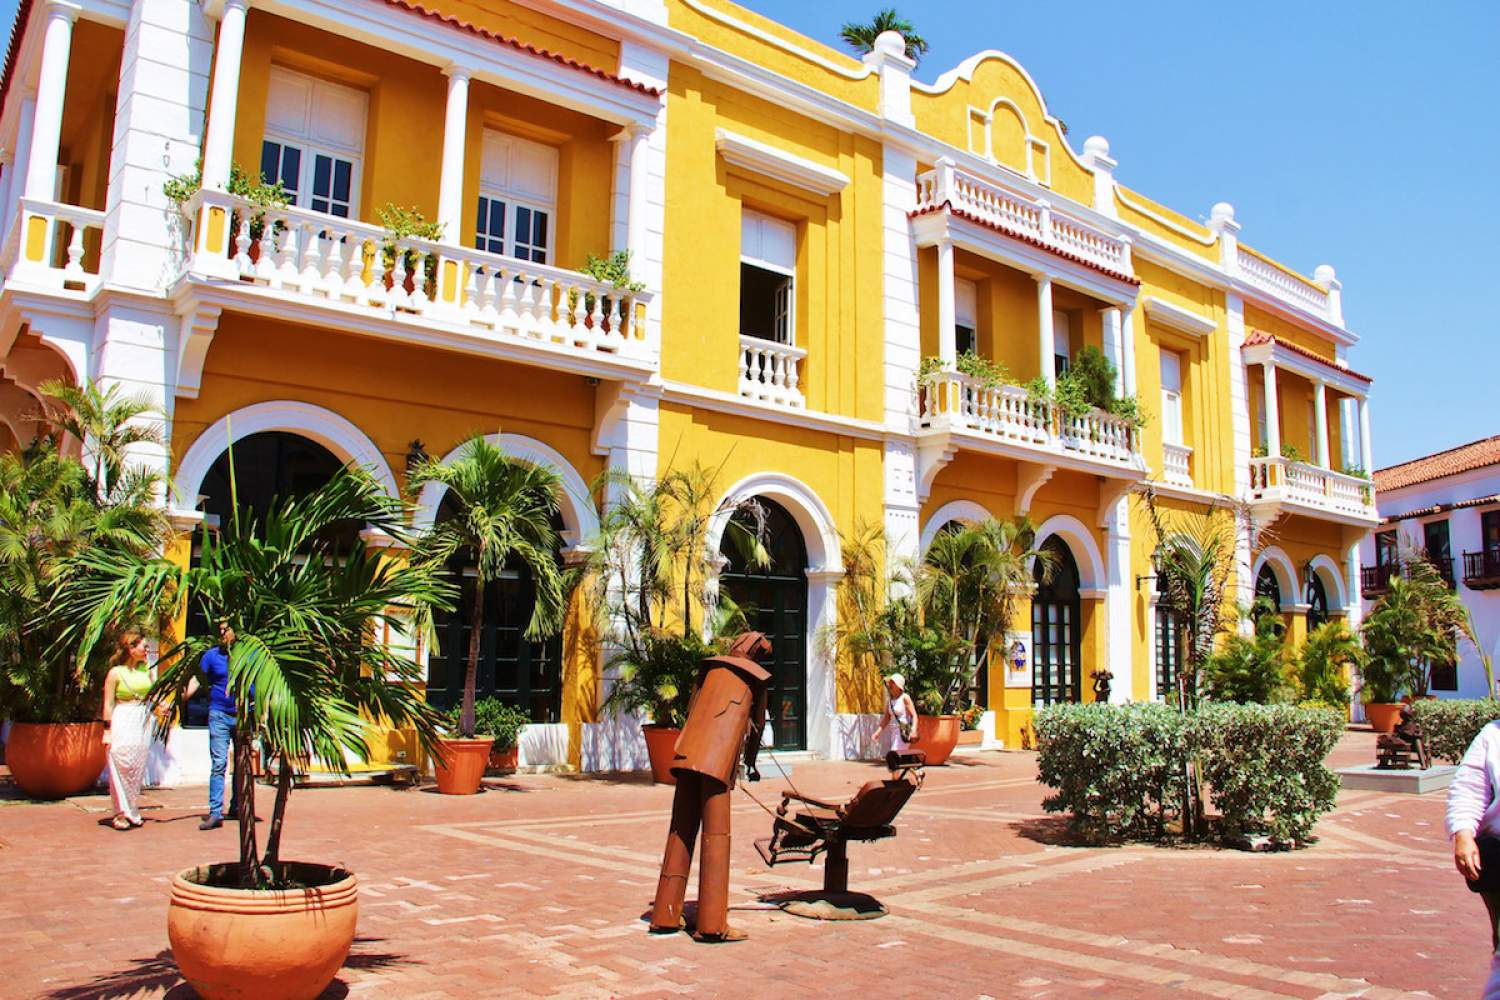 Historical Centre in Cartagena, Colombia